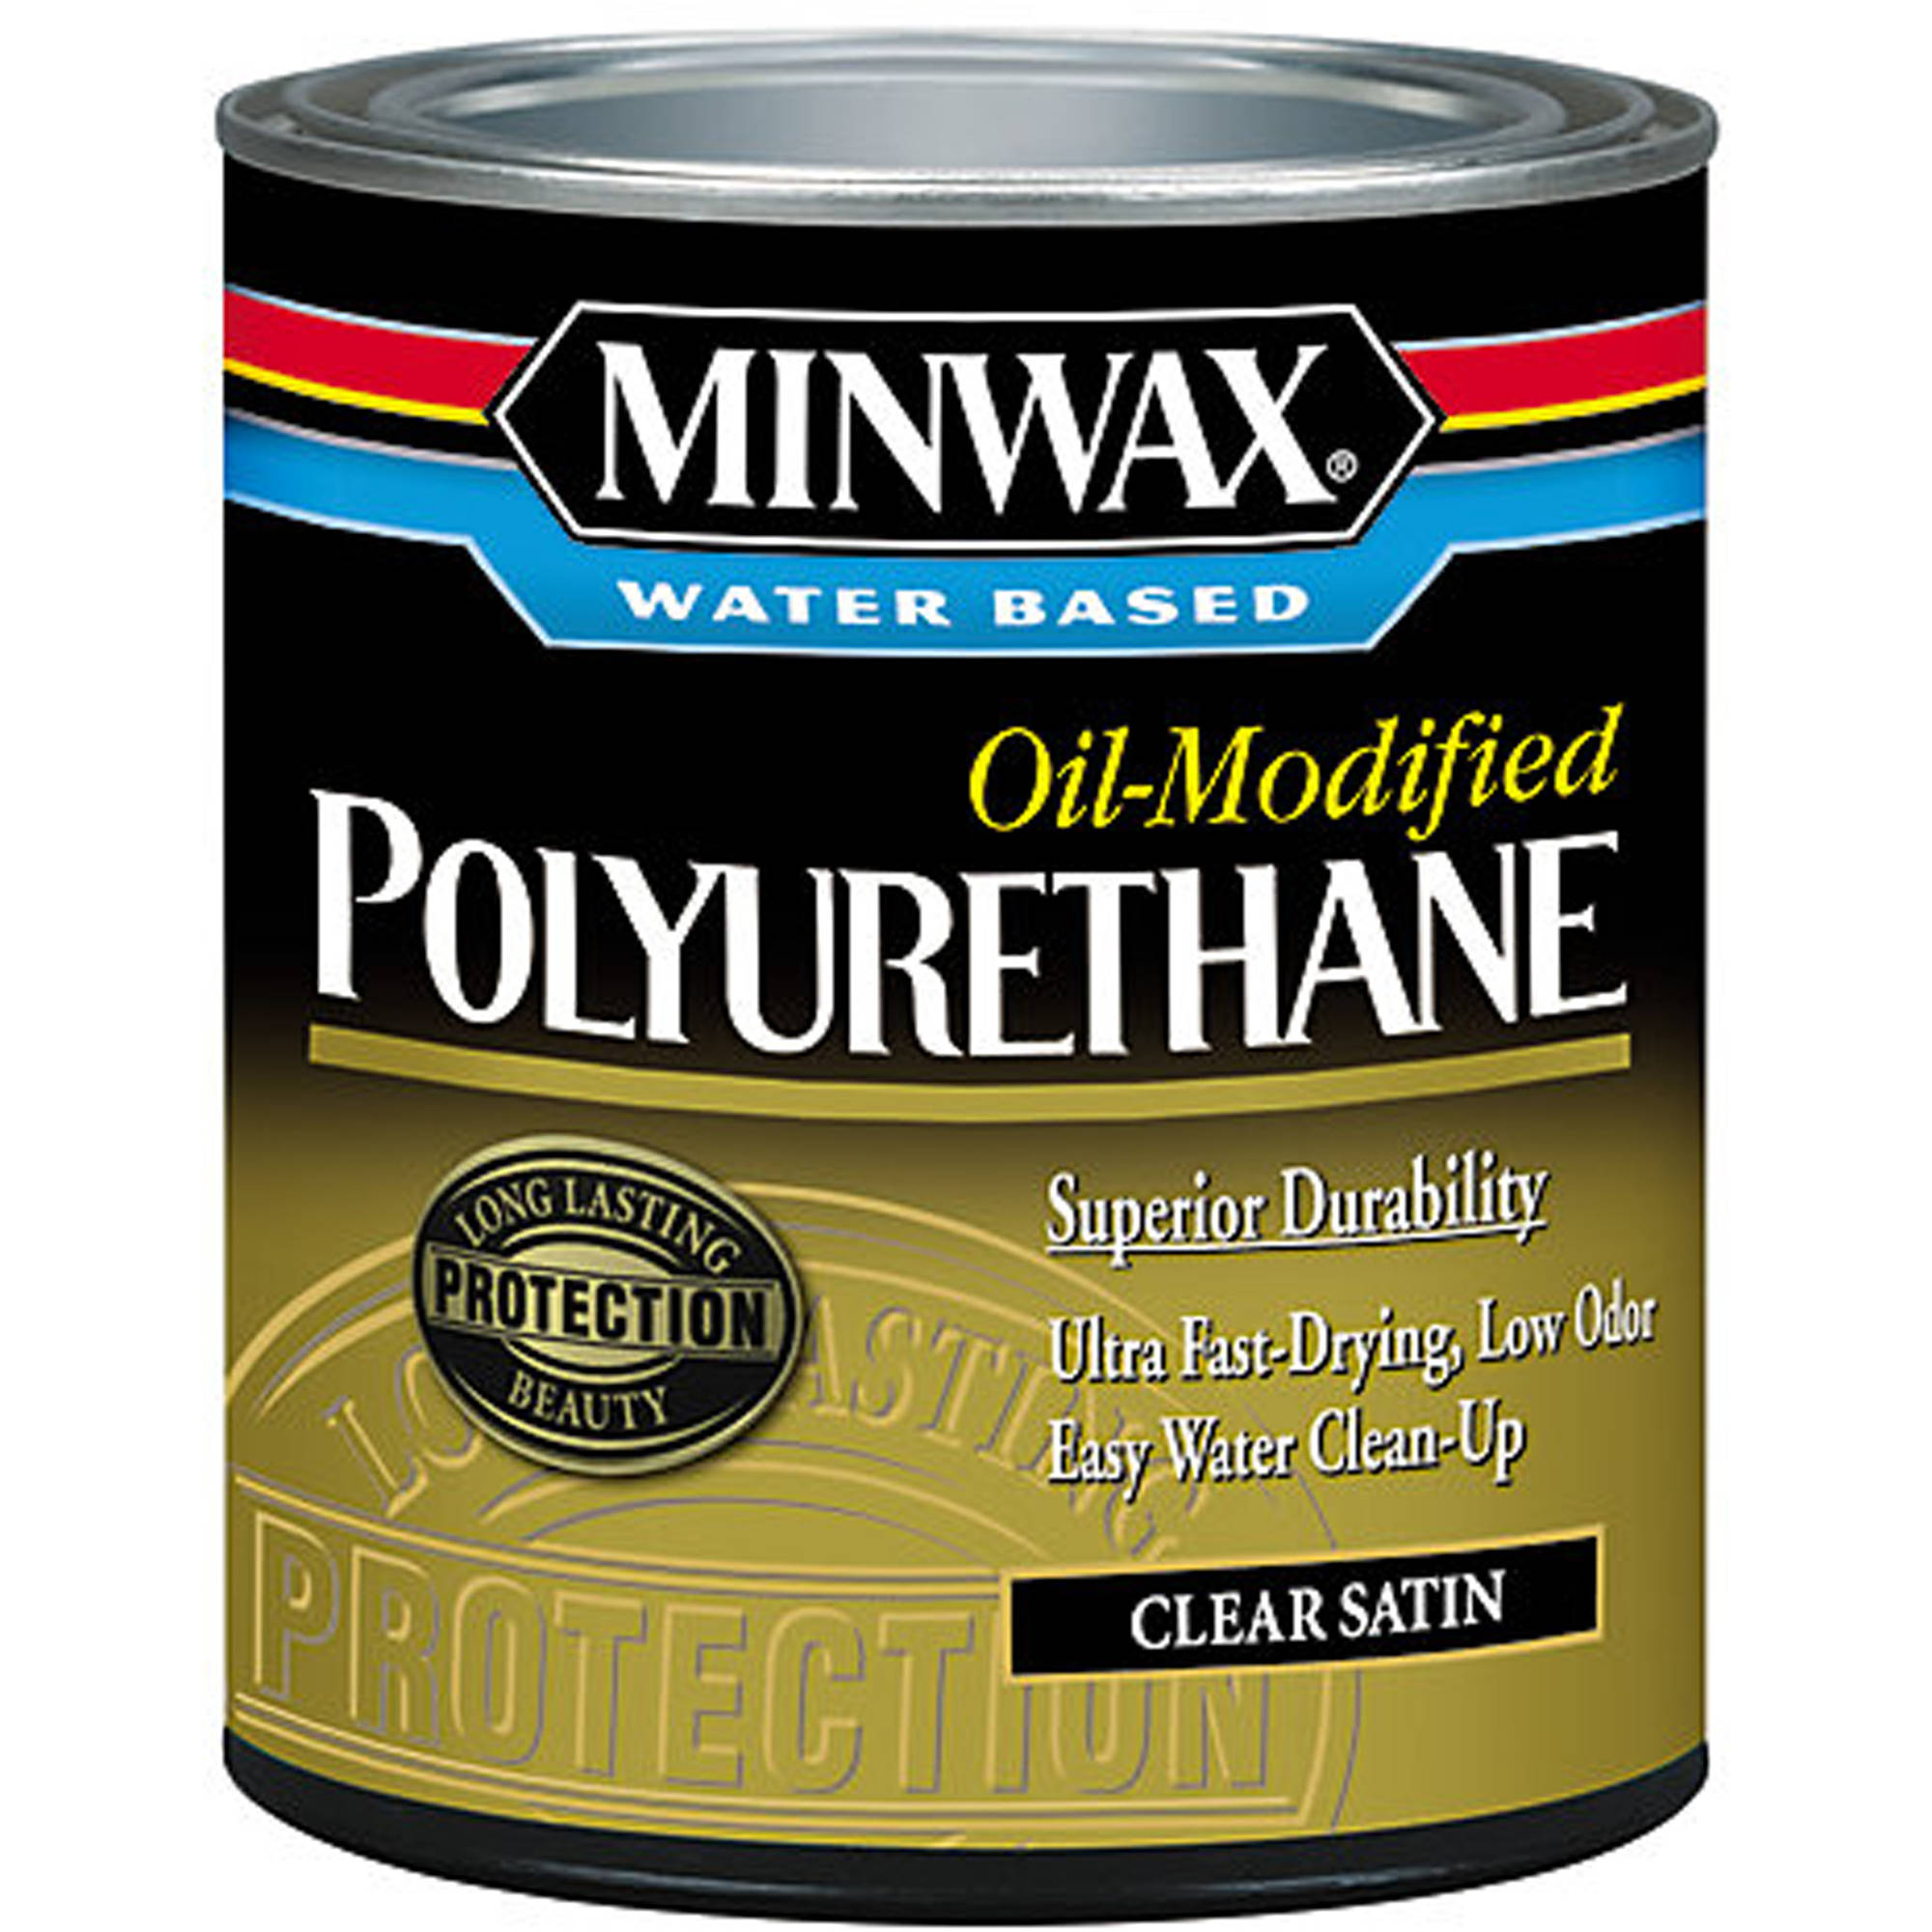 Minwax Water Based Oil-Modified Polyurethane, 1/2 pt, Satin